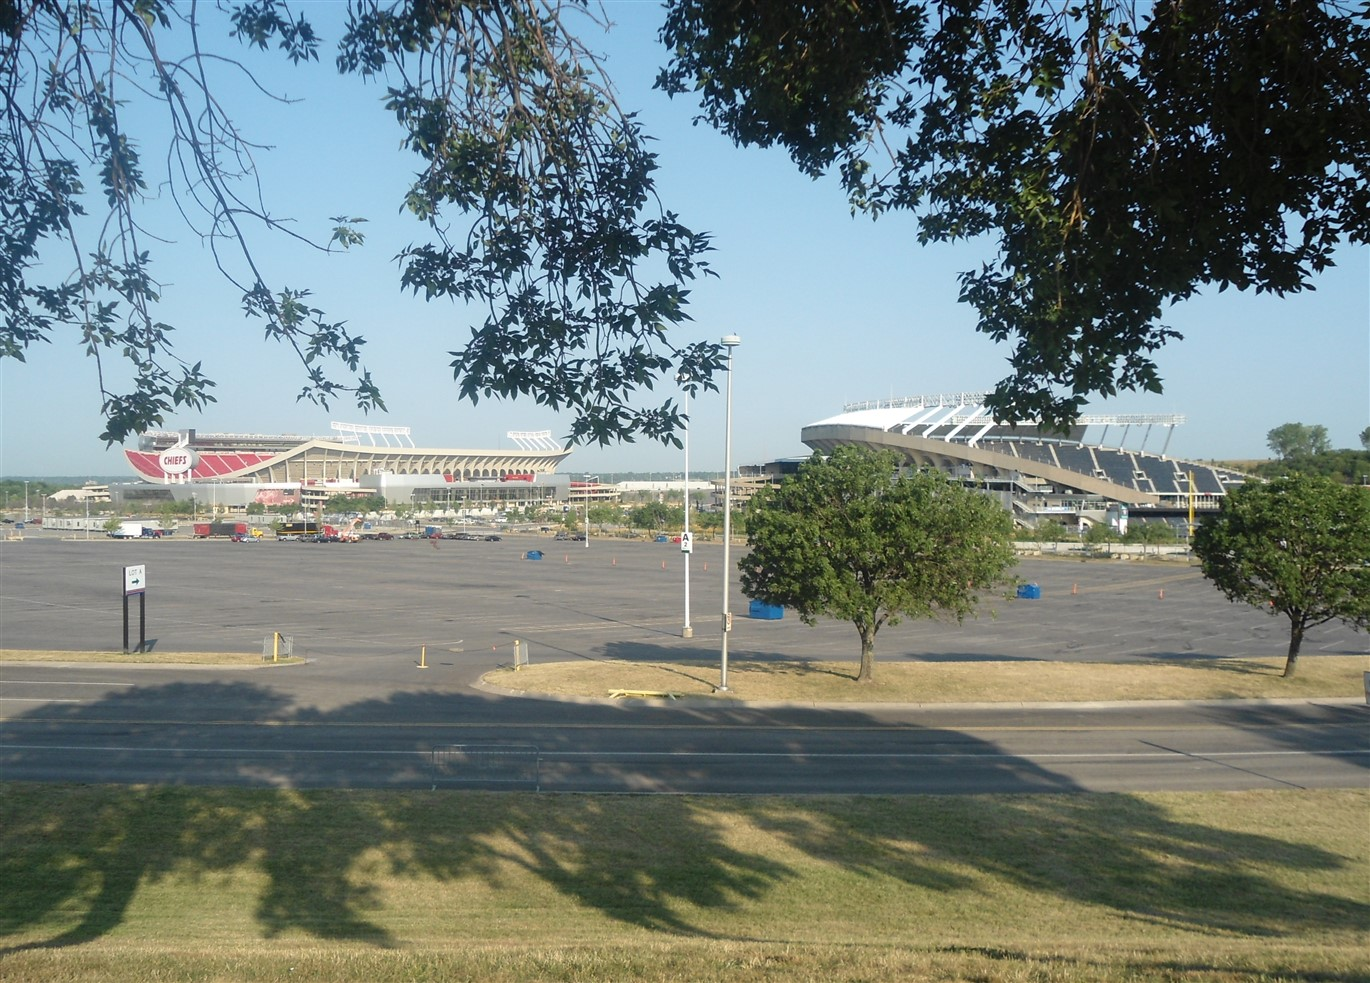 2012 07 02 5 Kansas City Stadiums.jpg